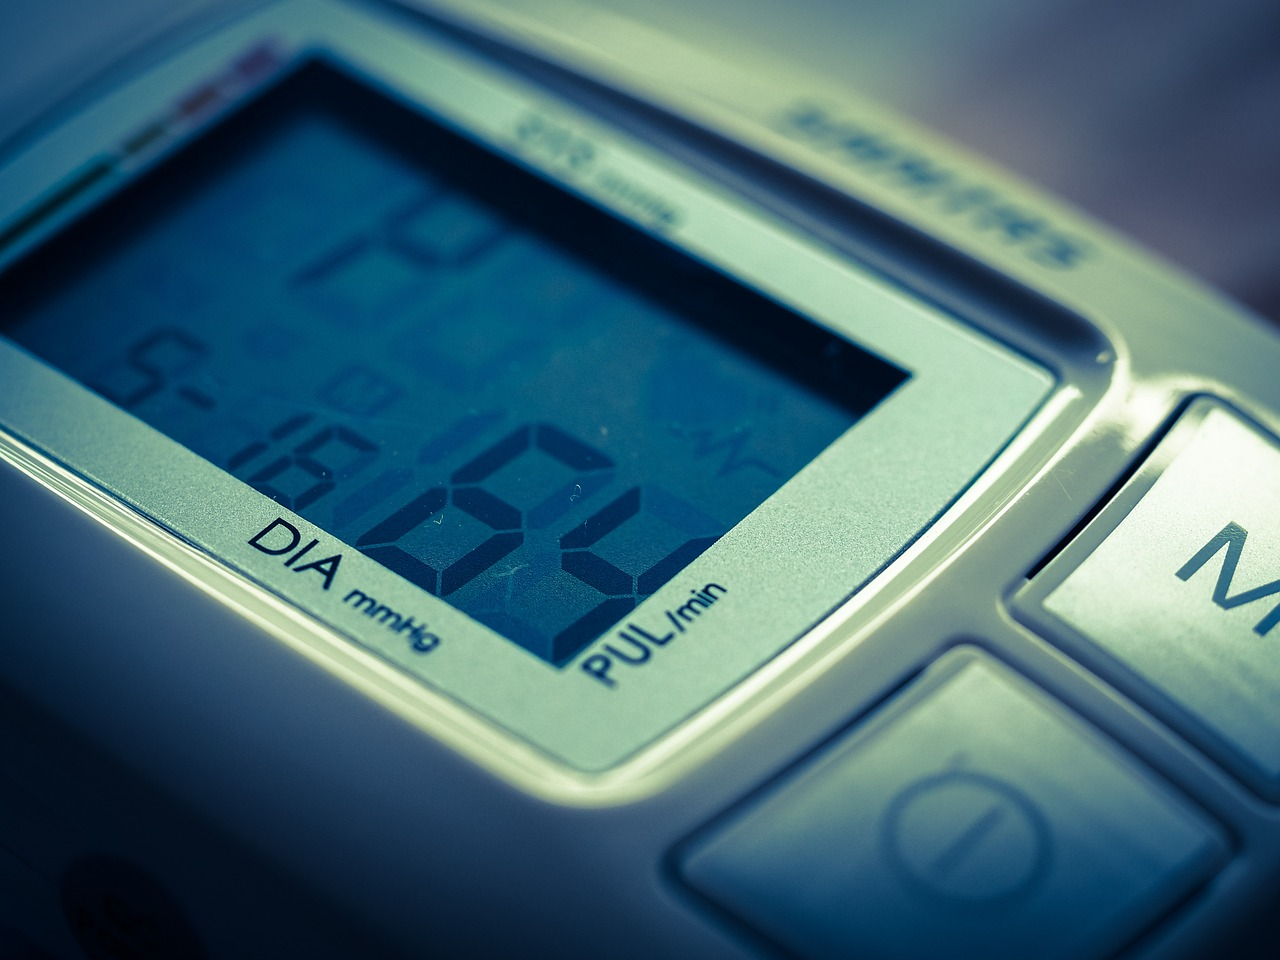 Home medical devices: Security and regulations